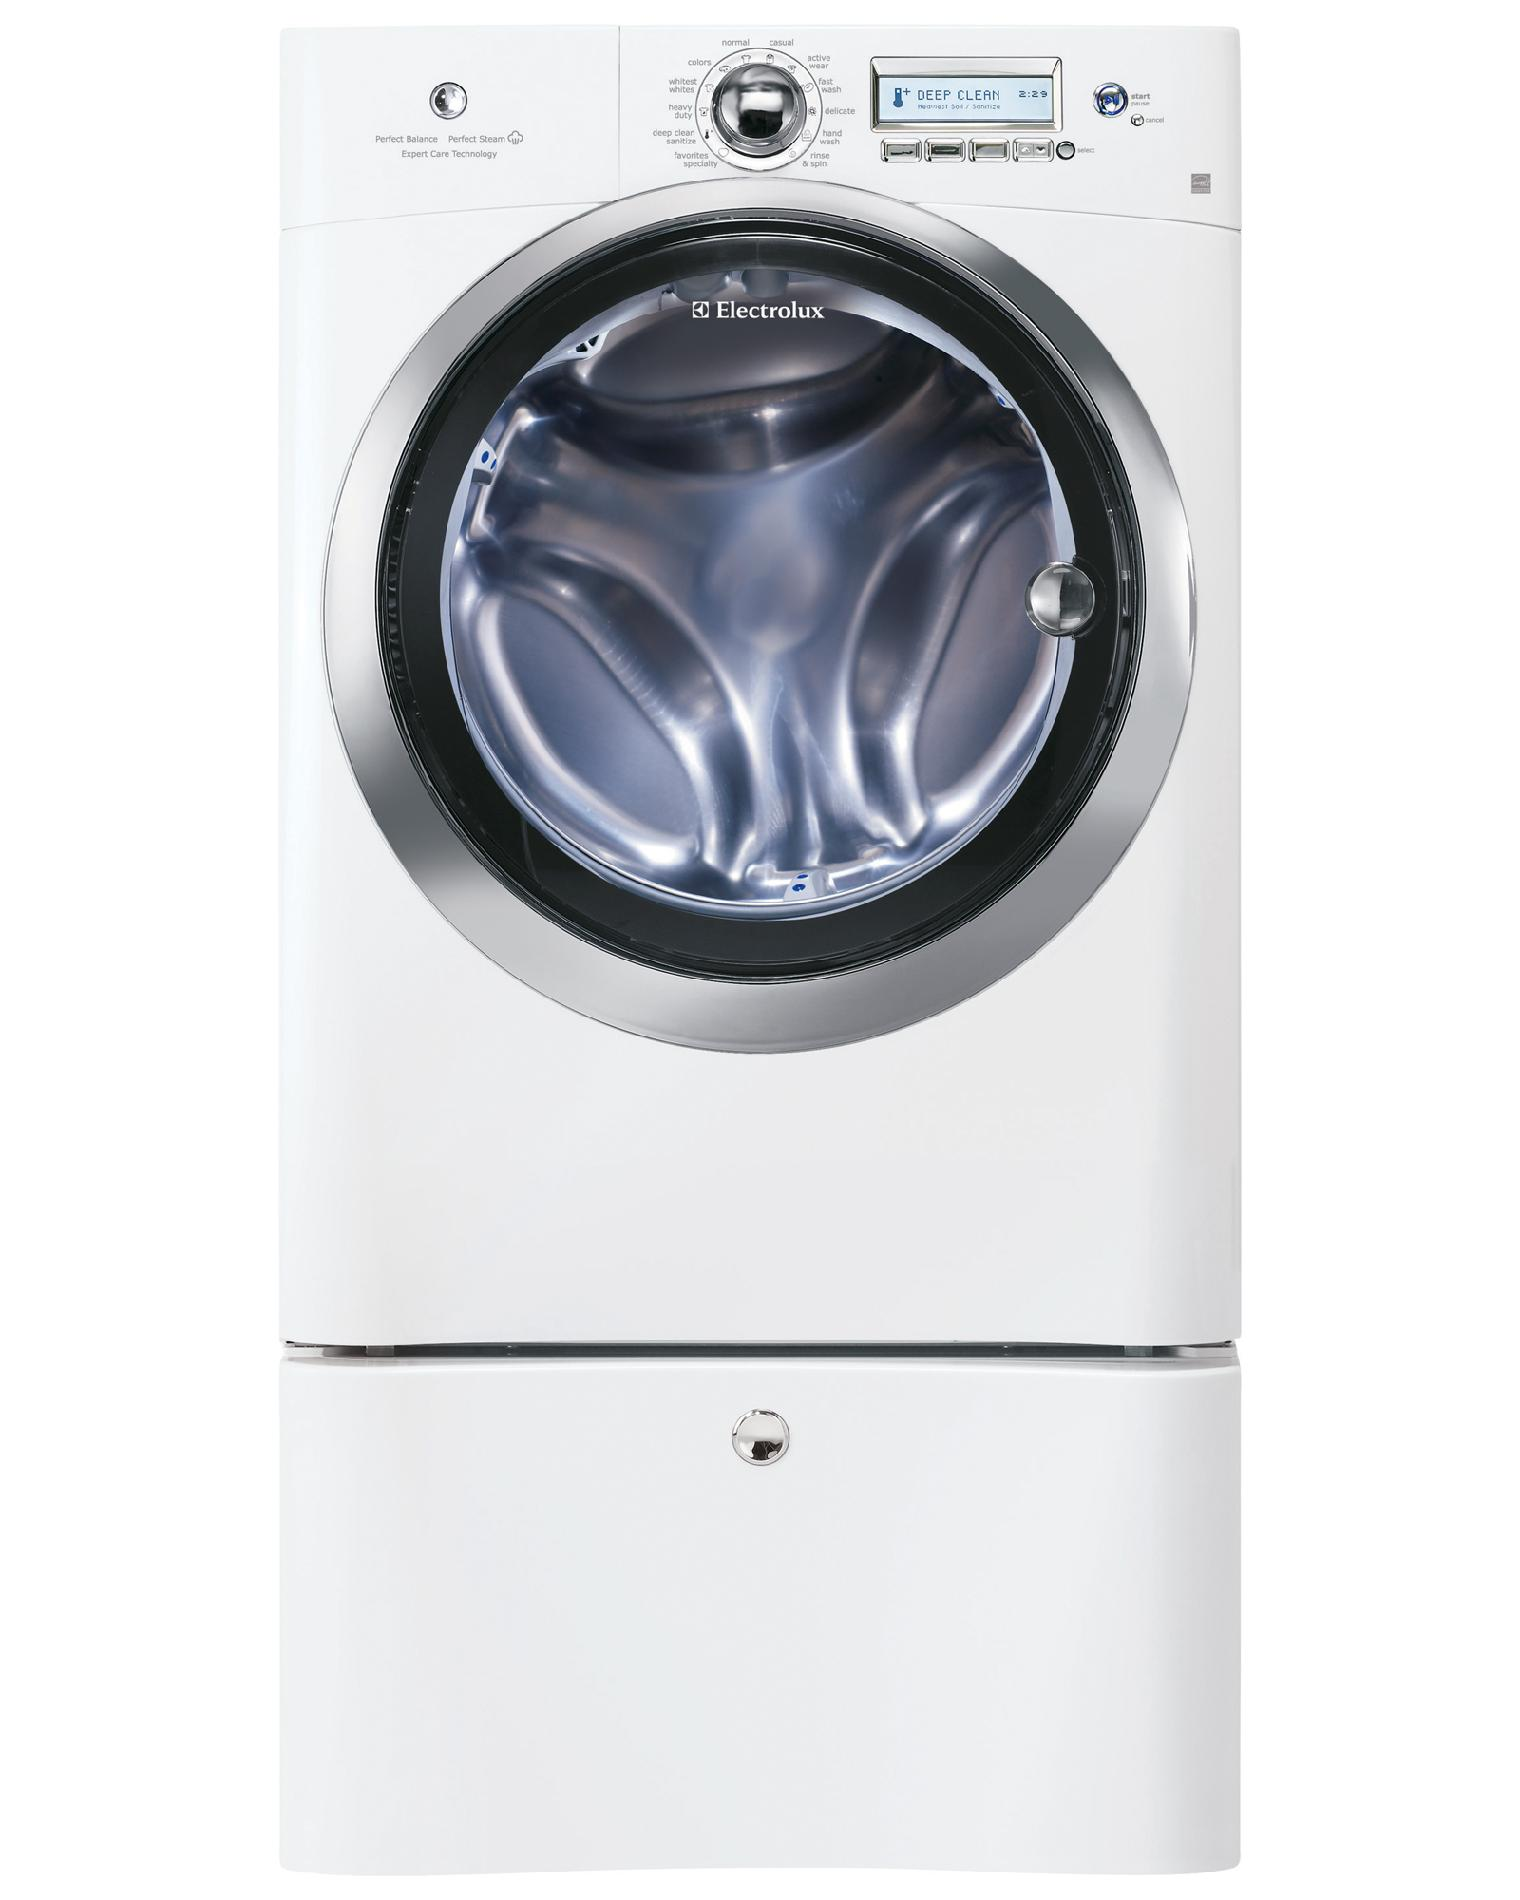 Electrolux 4.4 cu. ft. Front-Load Washer w/ Steam - Island White